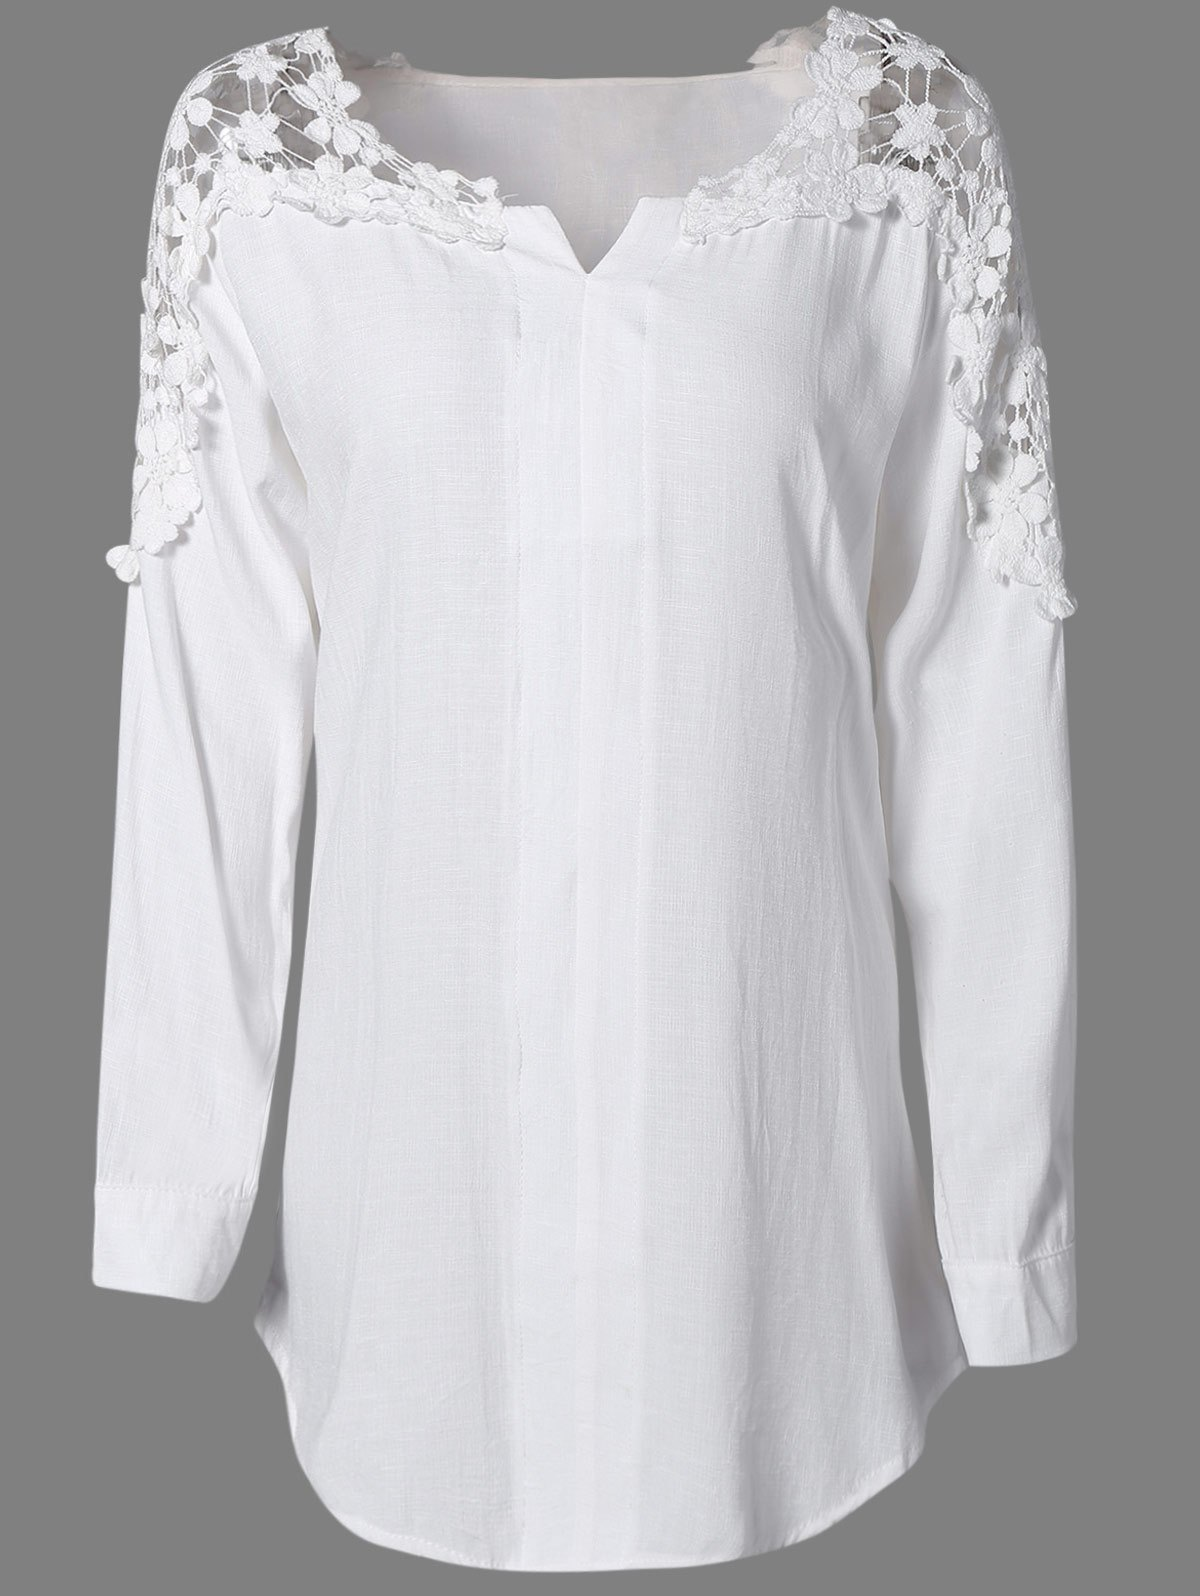 Oversized Fashion Solid Color Lace Hollow Out  Blouse